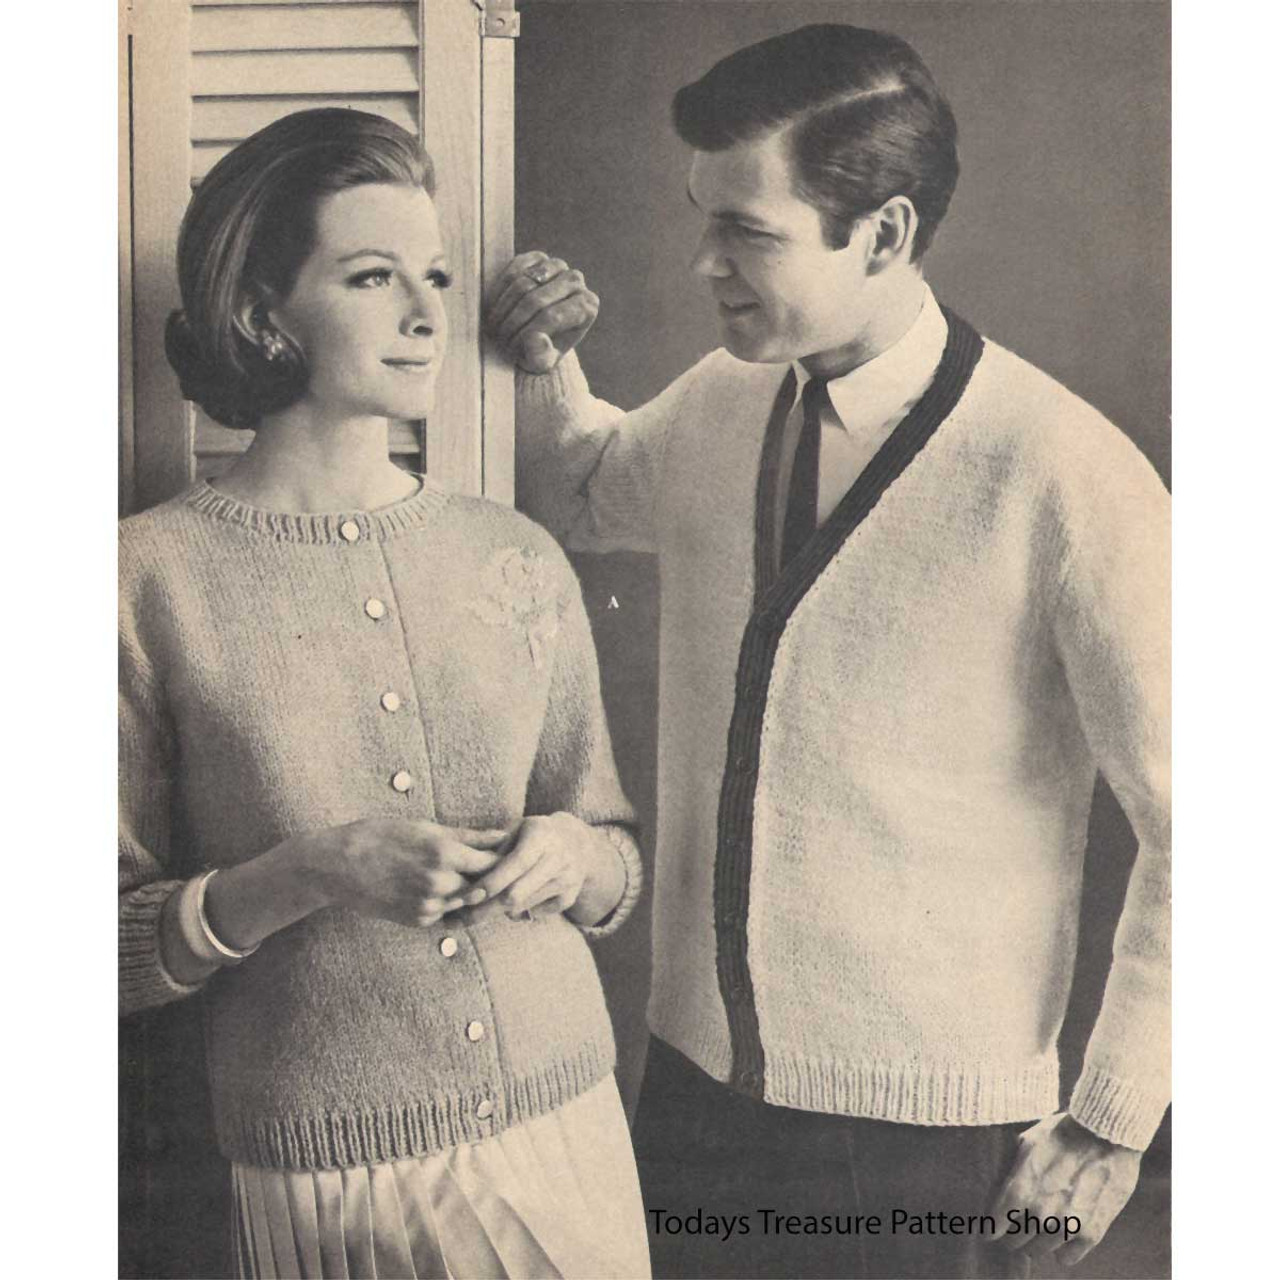 His & Hers Vintage Knitted Cardigans Pattern